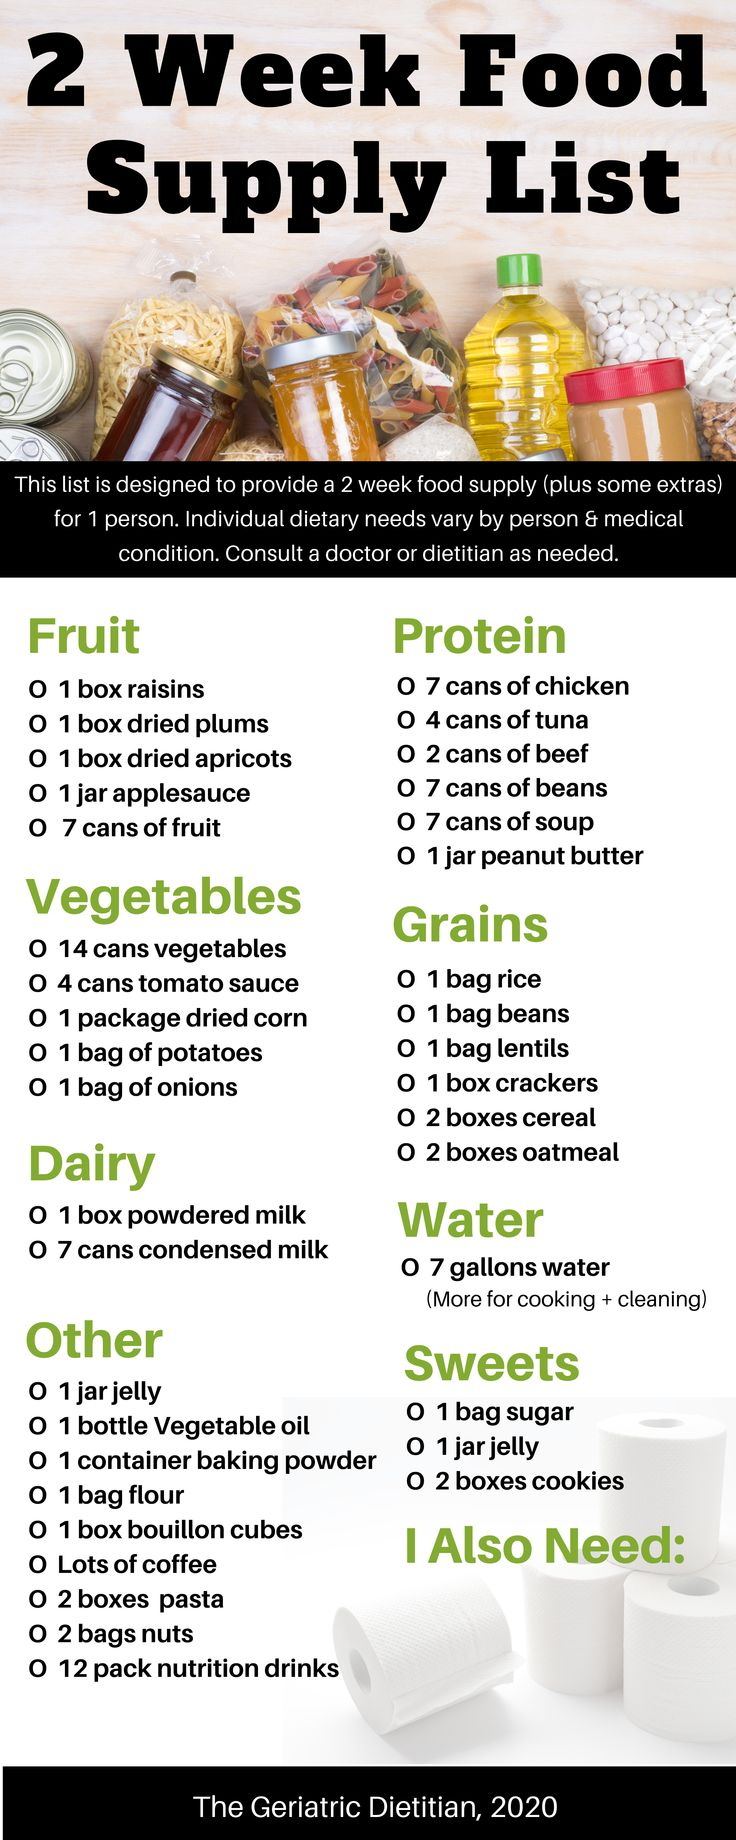 2 week food supply list for emergency or disaster